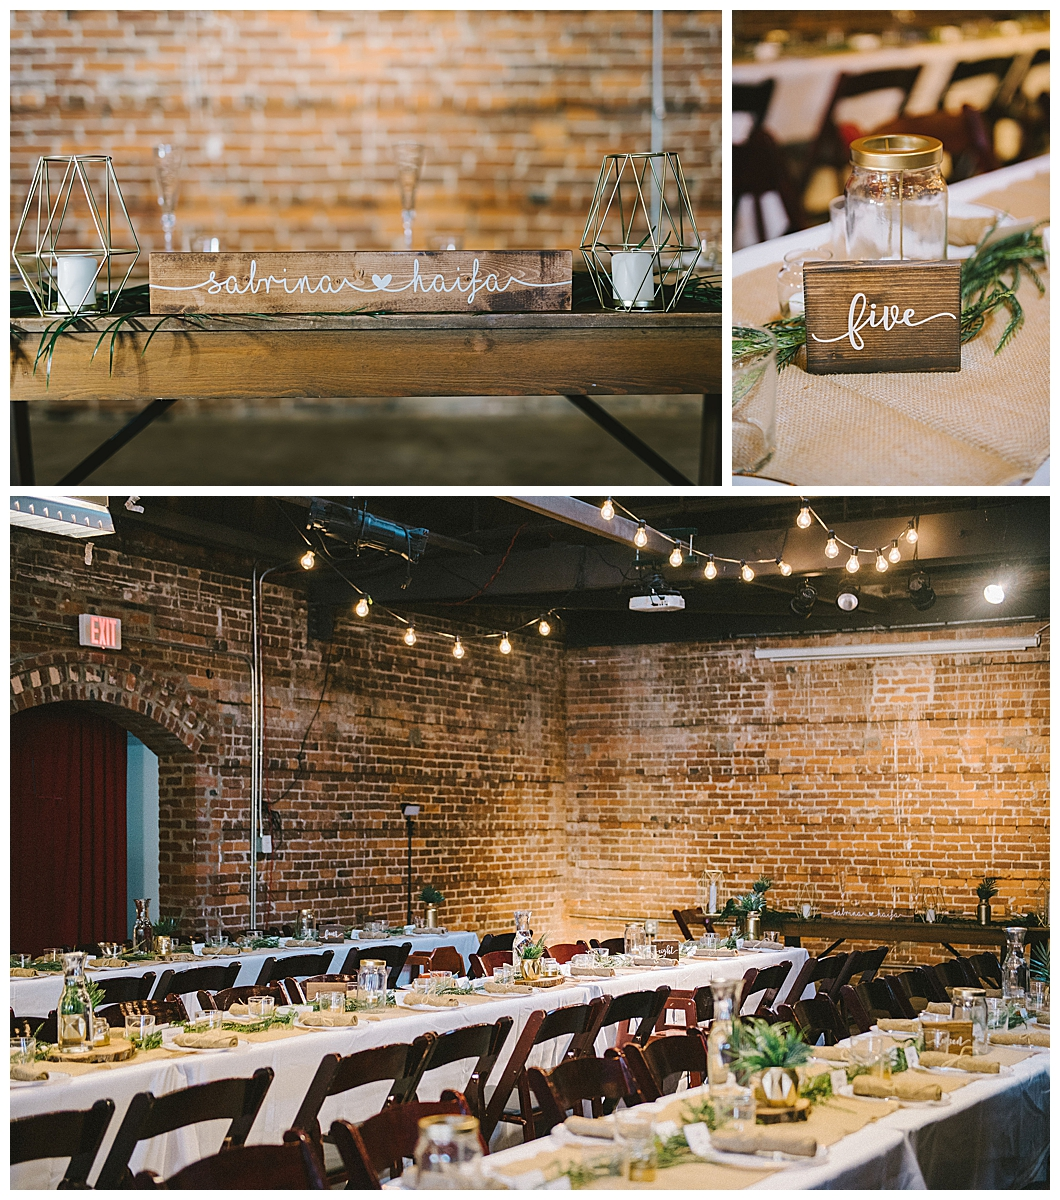 cl-space-tampa-wedding-venue